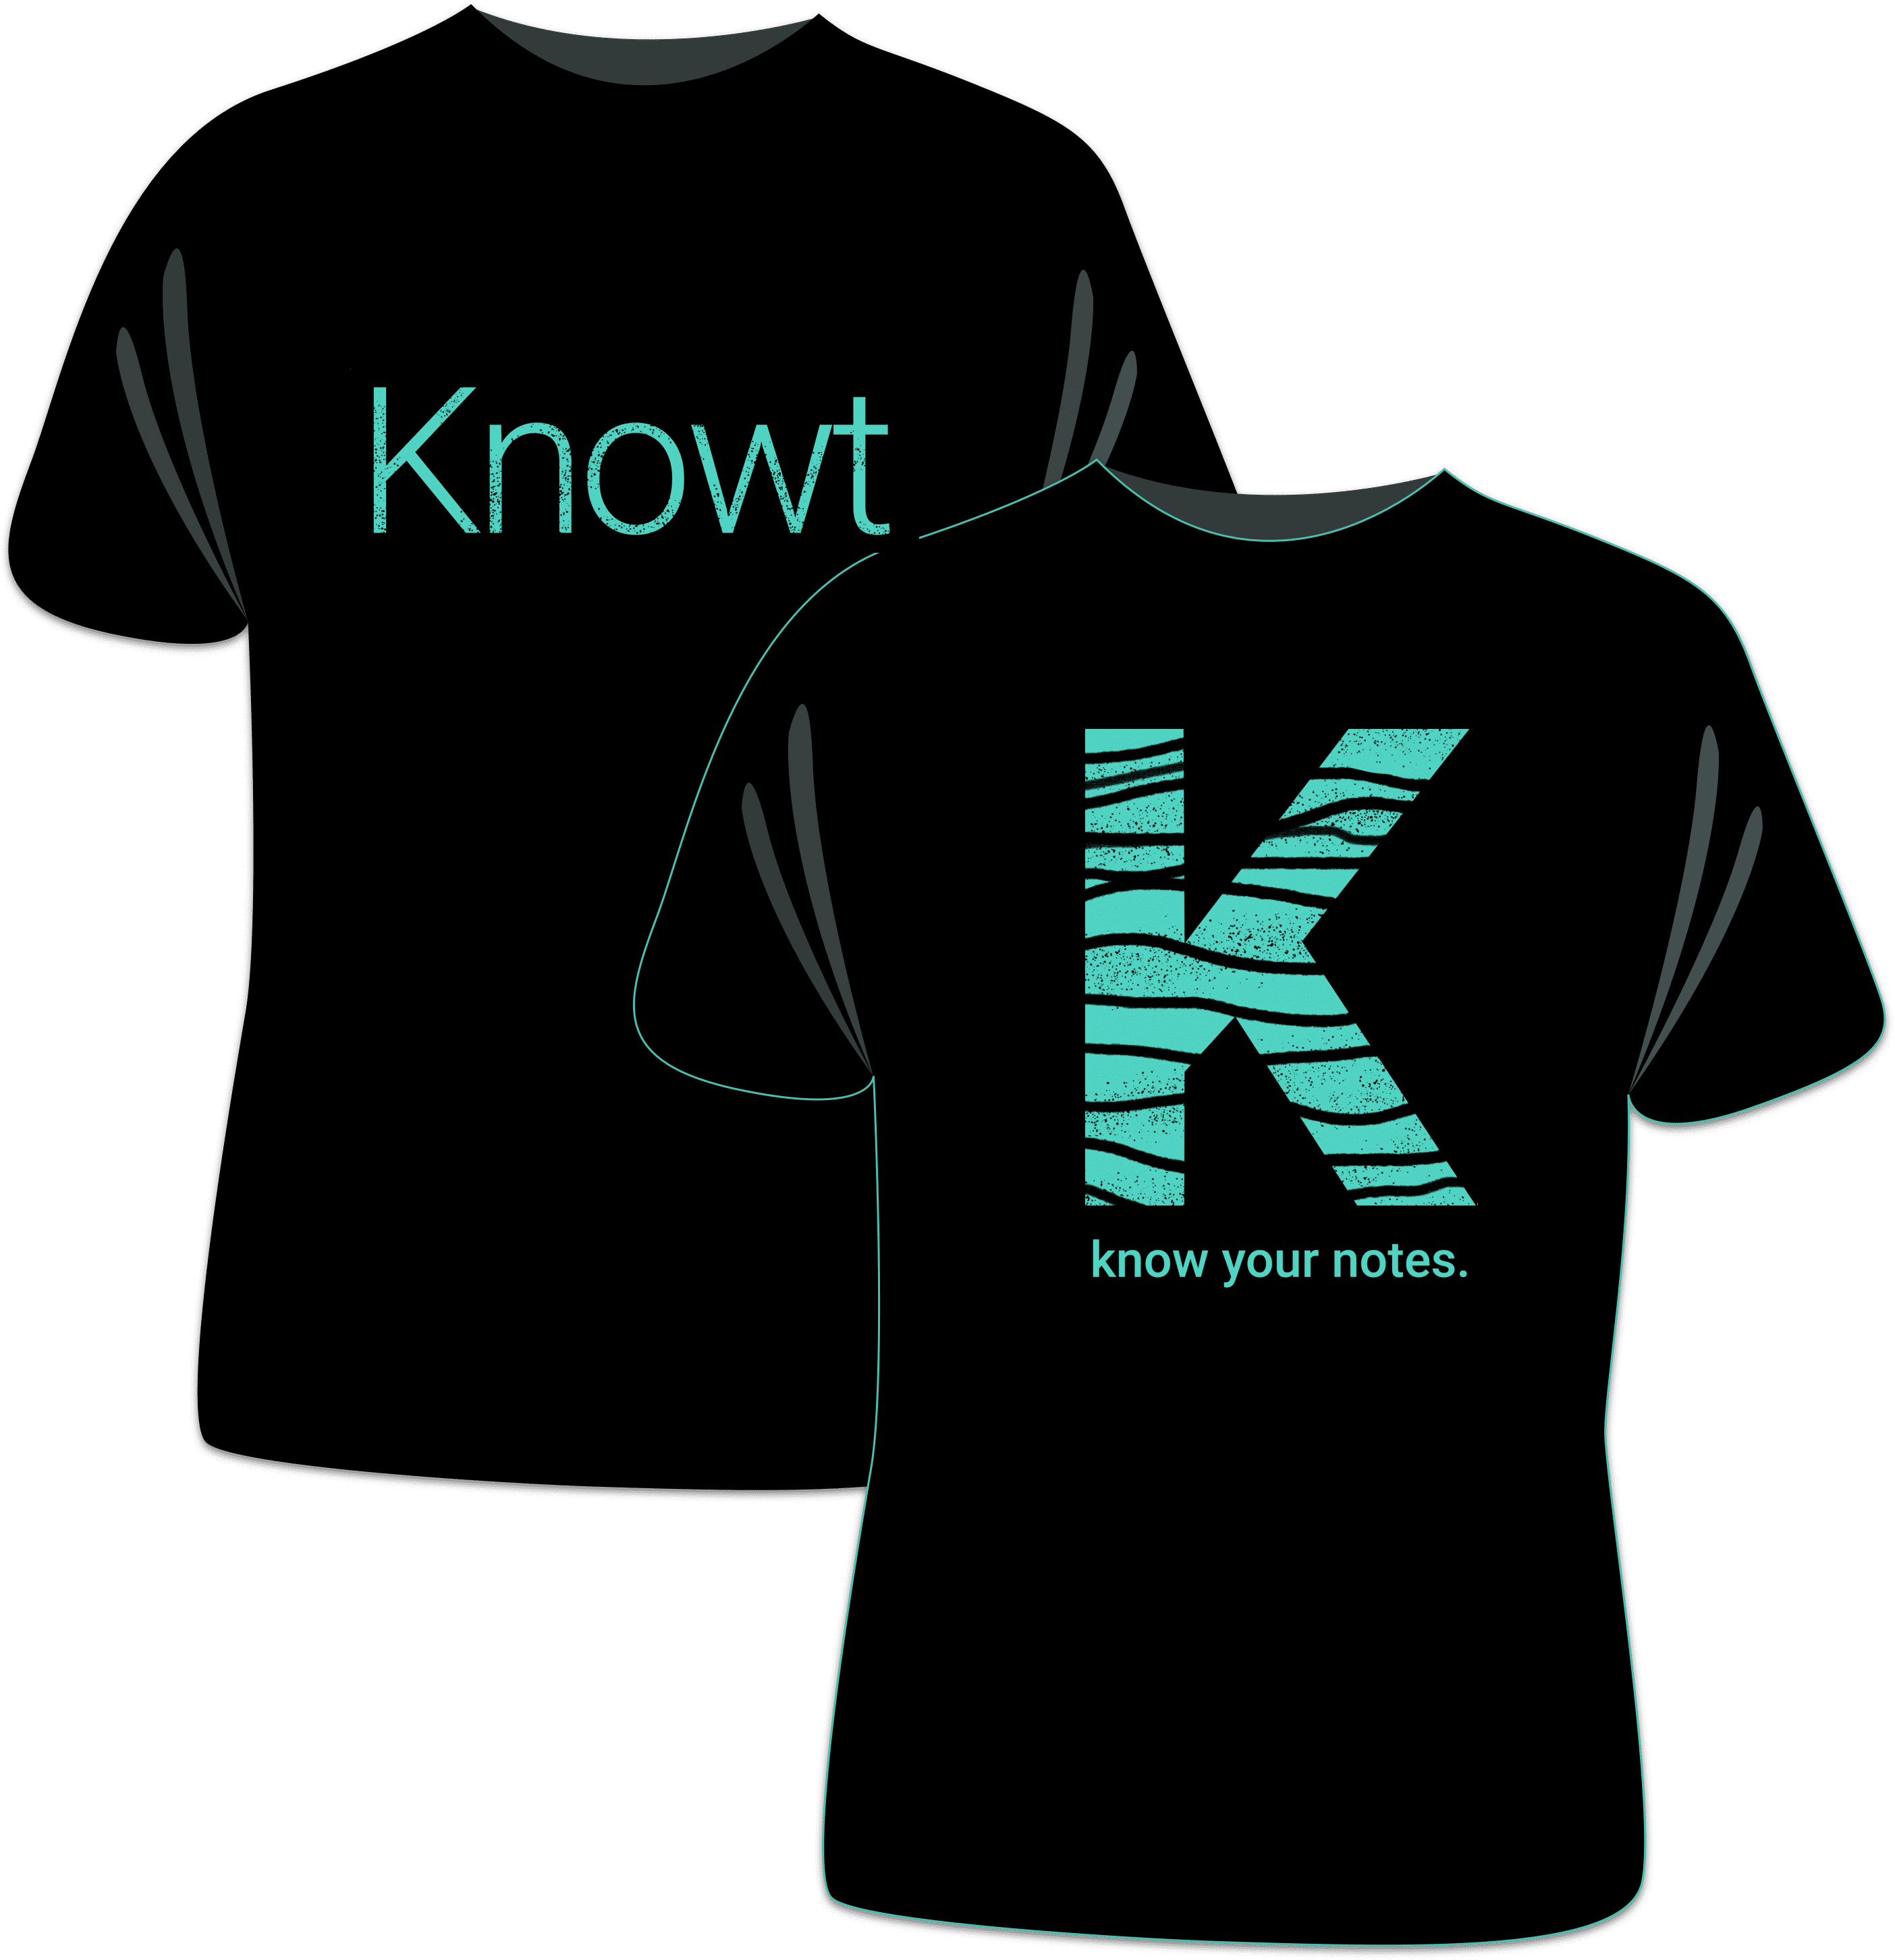 Knowt Product Image